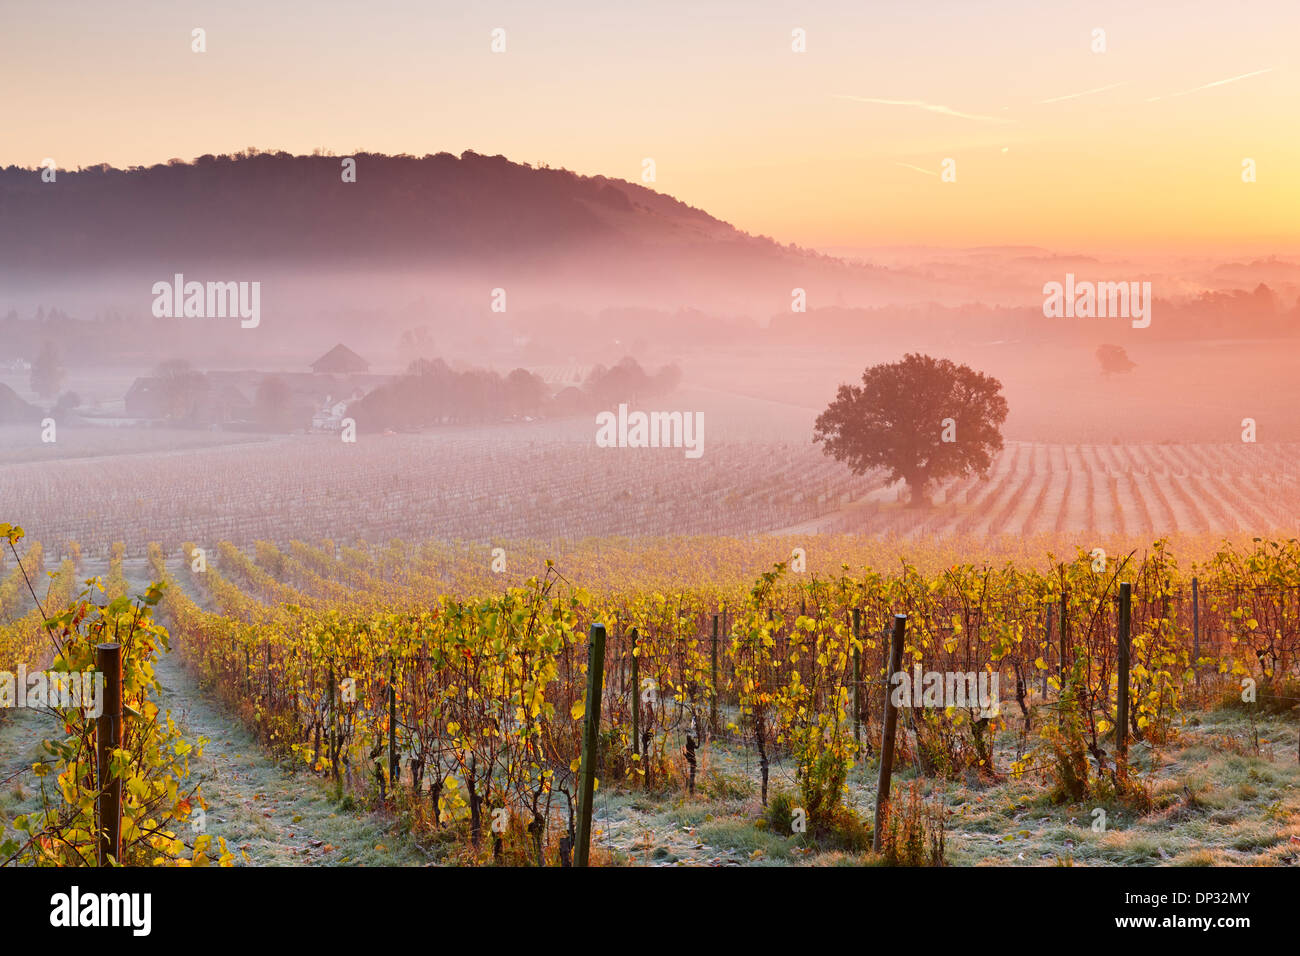 Low lying mist floating over autumn grape vines at Denbies Wine Estate - Stock Image